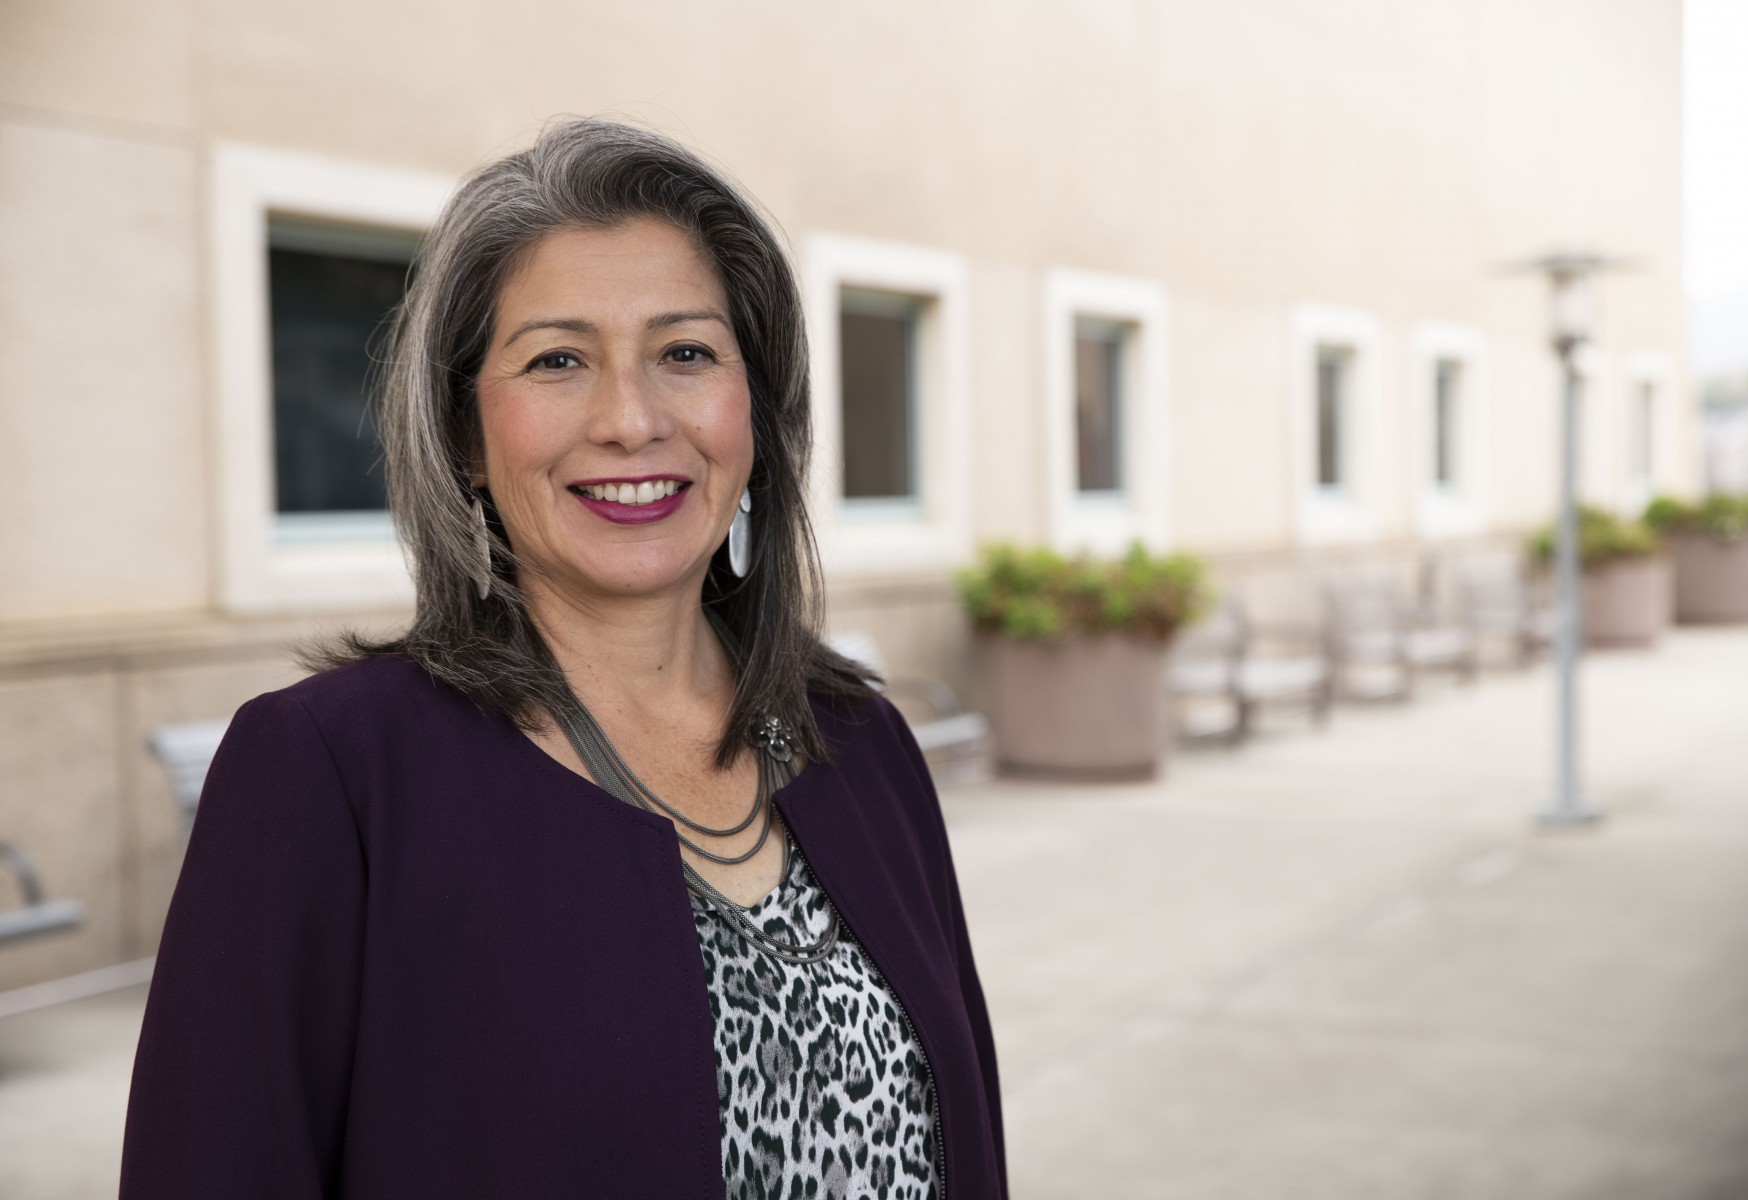 Patricia Prado-Olmos, formerly CSUSM's vice president of Community Engagement, has been given a new title: chief community engagement officer, reflecting her charge to work with faculty, staff and students across the university to more deeply connect with the region.